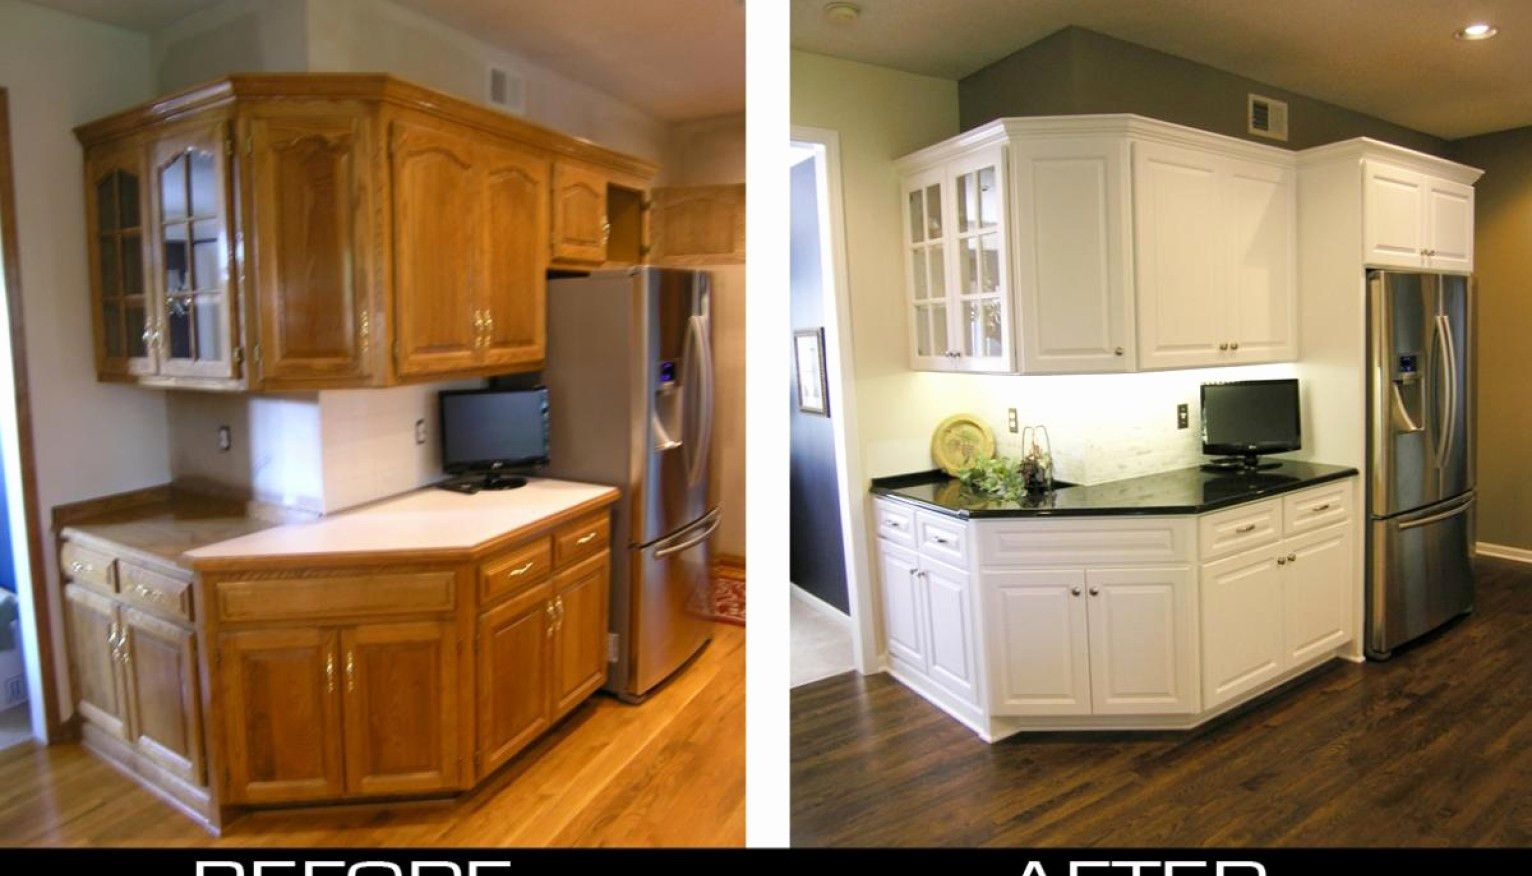 50 How To Refinish Oak Kitchen Cabinets Kitchen Cabinet Lighting Ideas Check More A Cost Of Kitchen Cabinets Refinish Kitchen Cabinets Wood Kitchen Cabinets